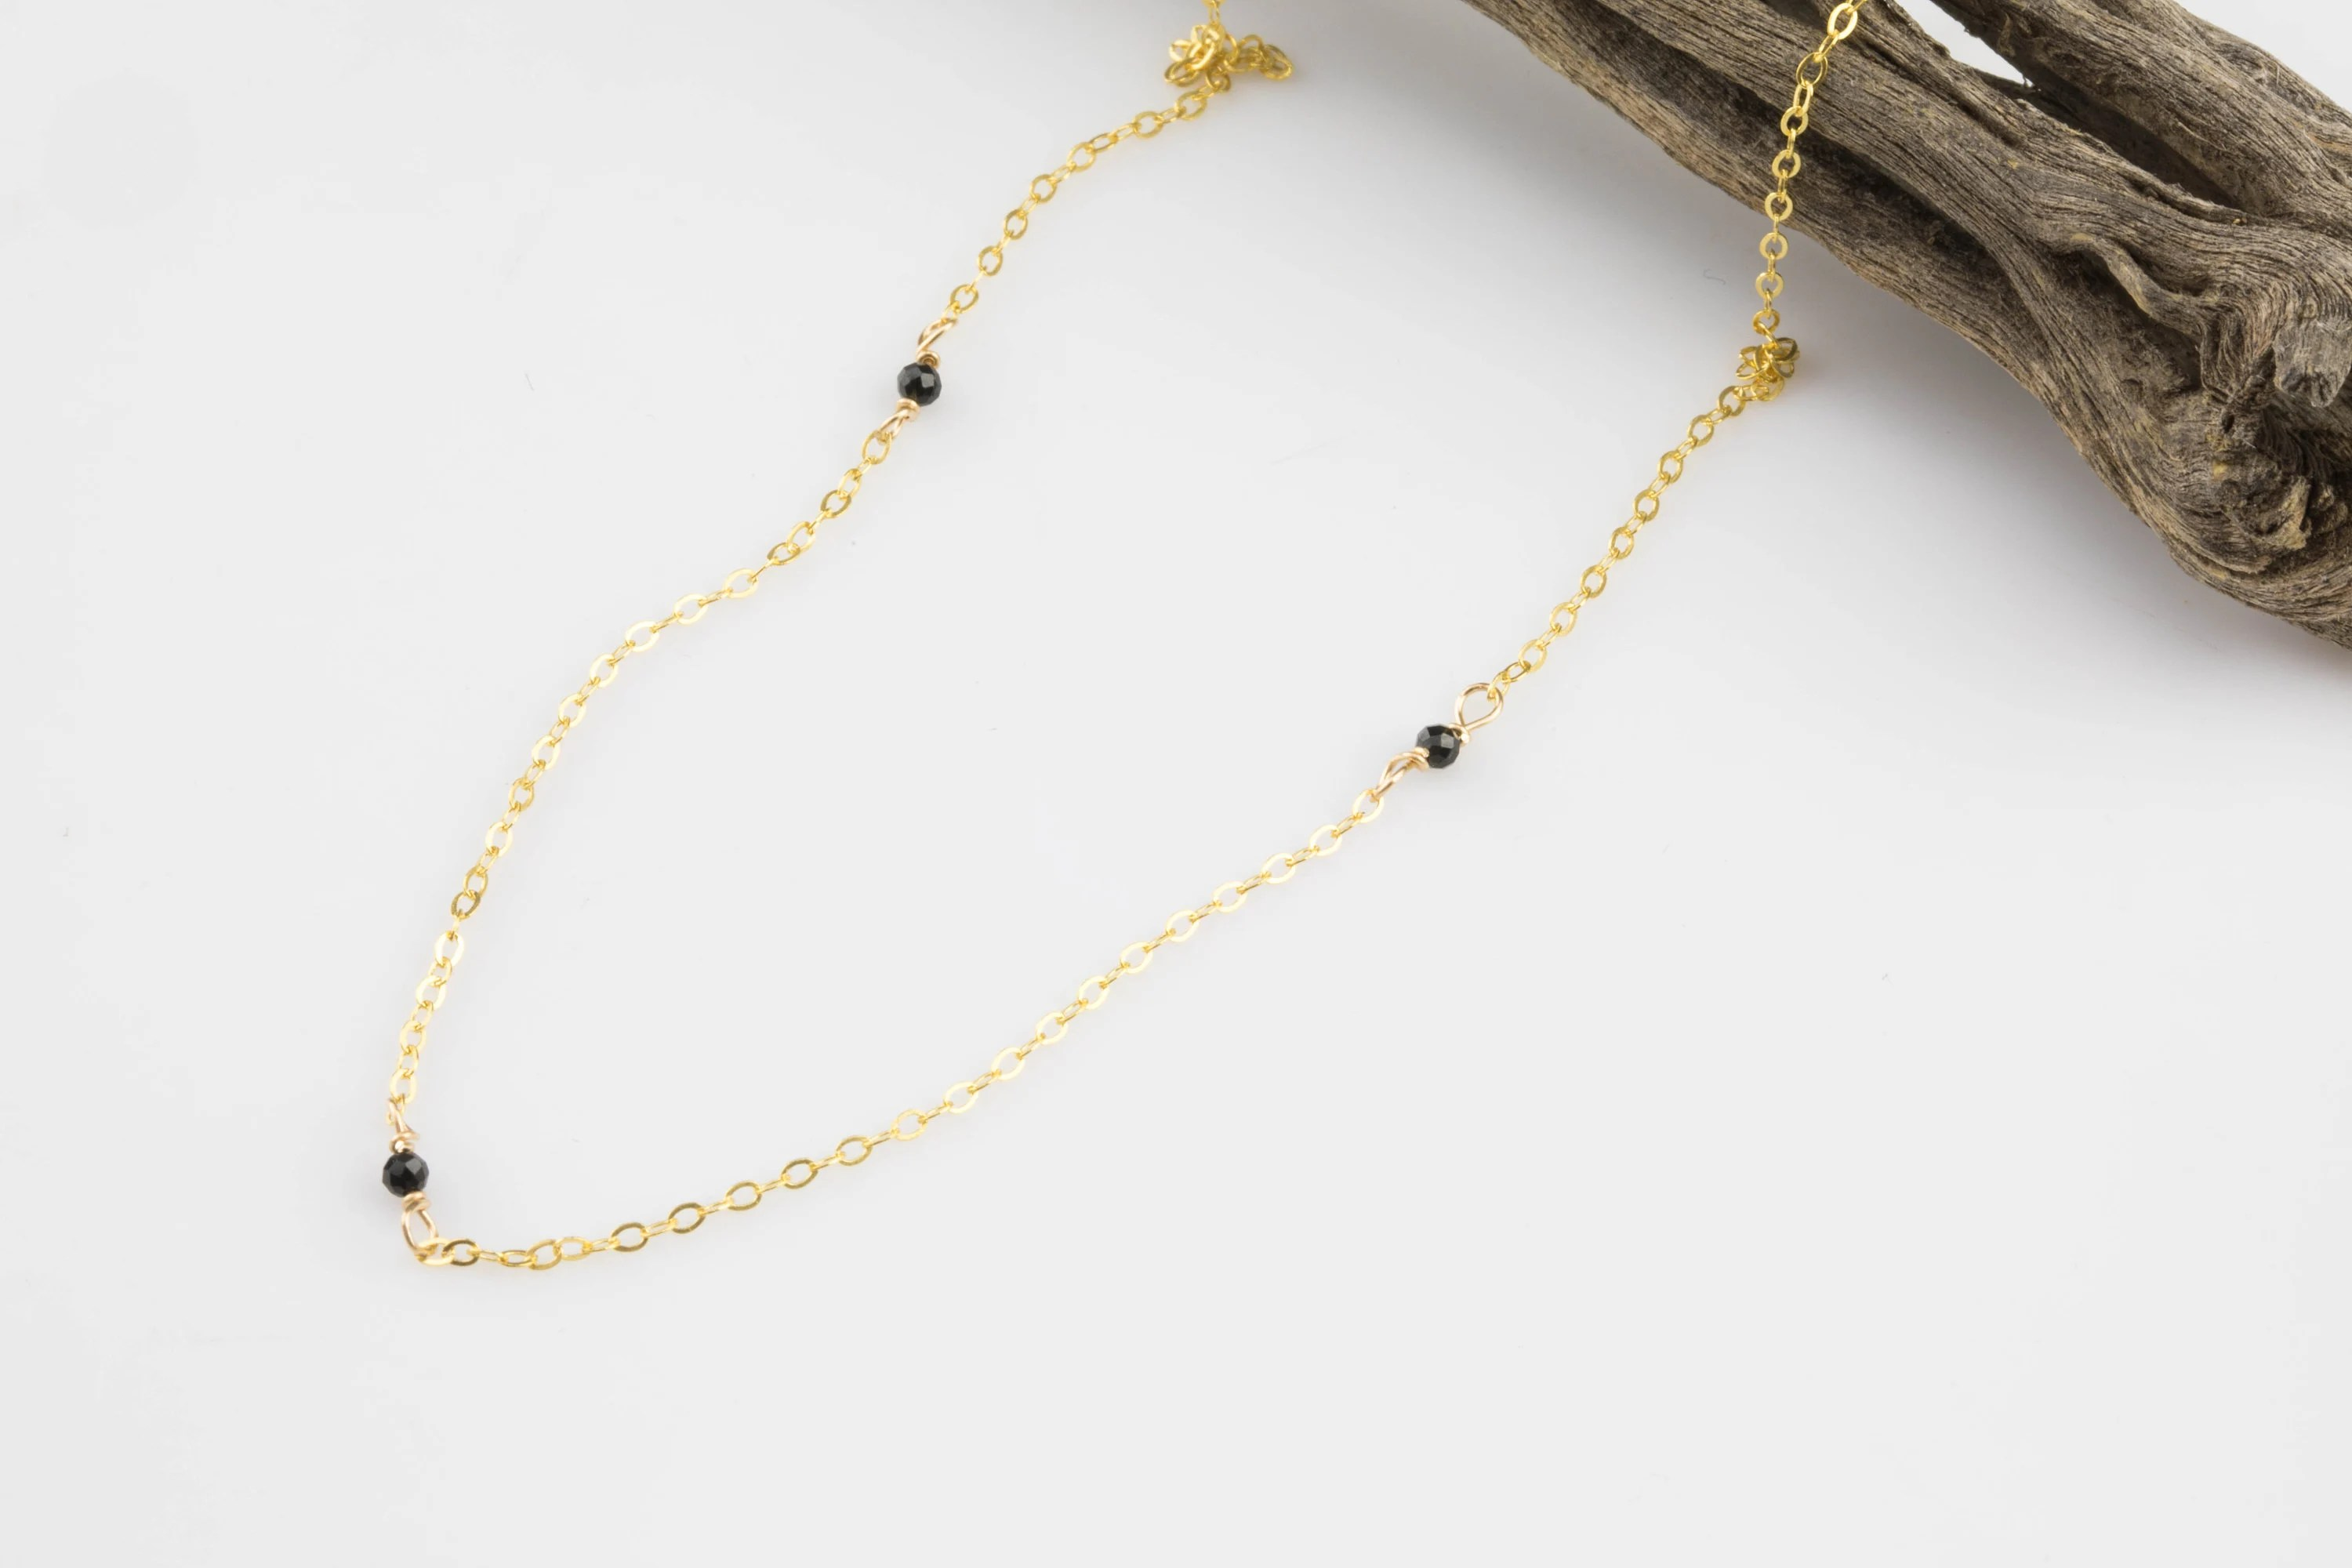 Wholesale Jewelry Gold Filled Gemstone Satellite Gold Filled Necklace Minimalist Jewelry